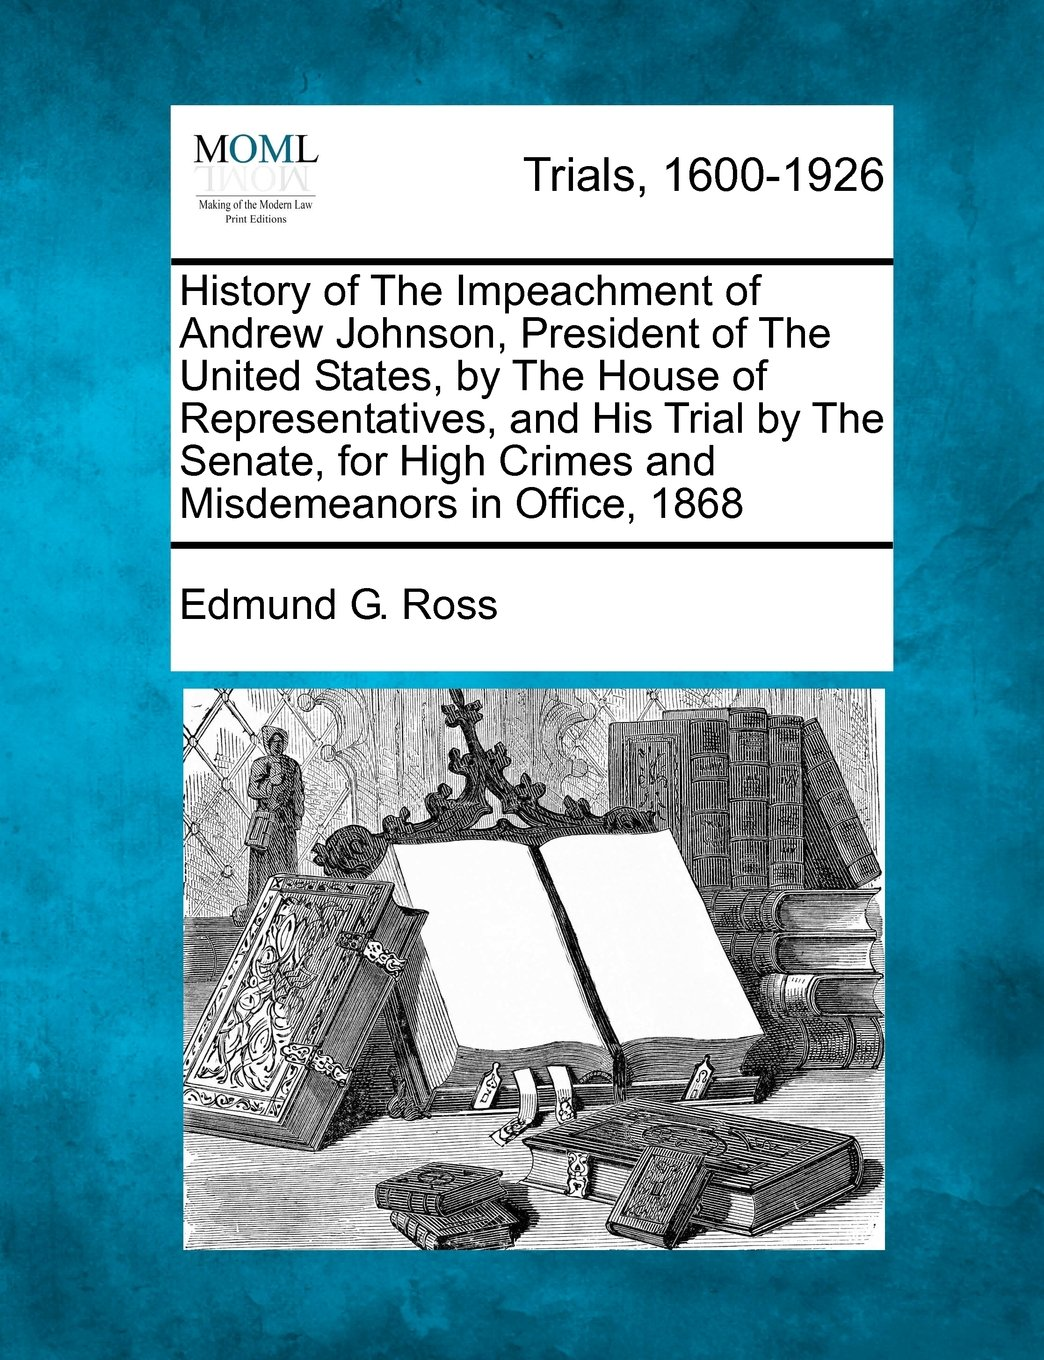 History of The Impeachment of Andrew Johnson, President of The United States, by The House of Representatives, and His Trial by The Senate, for High Crimes and Misdemeanors in Office, 1868 PDF